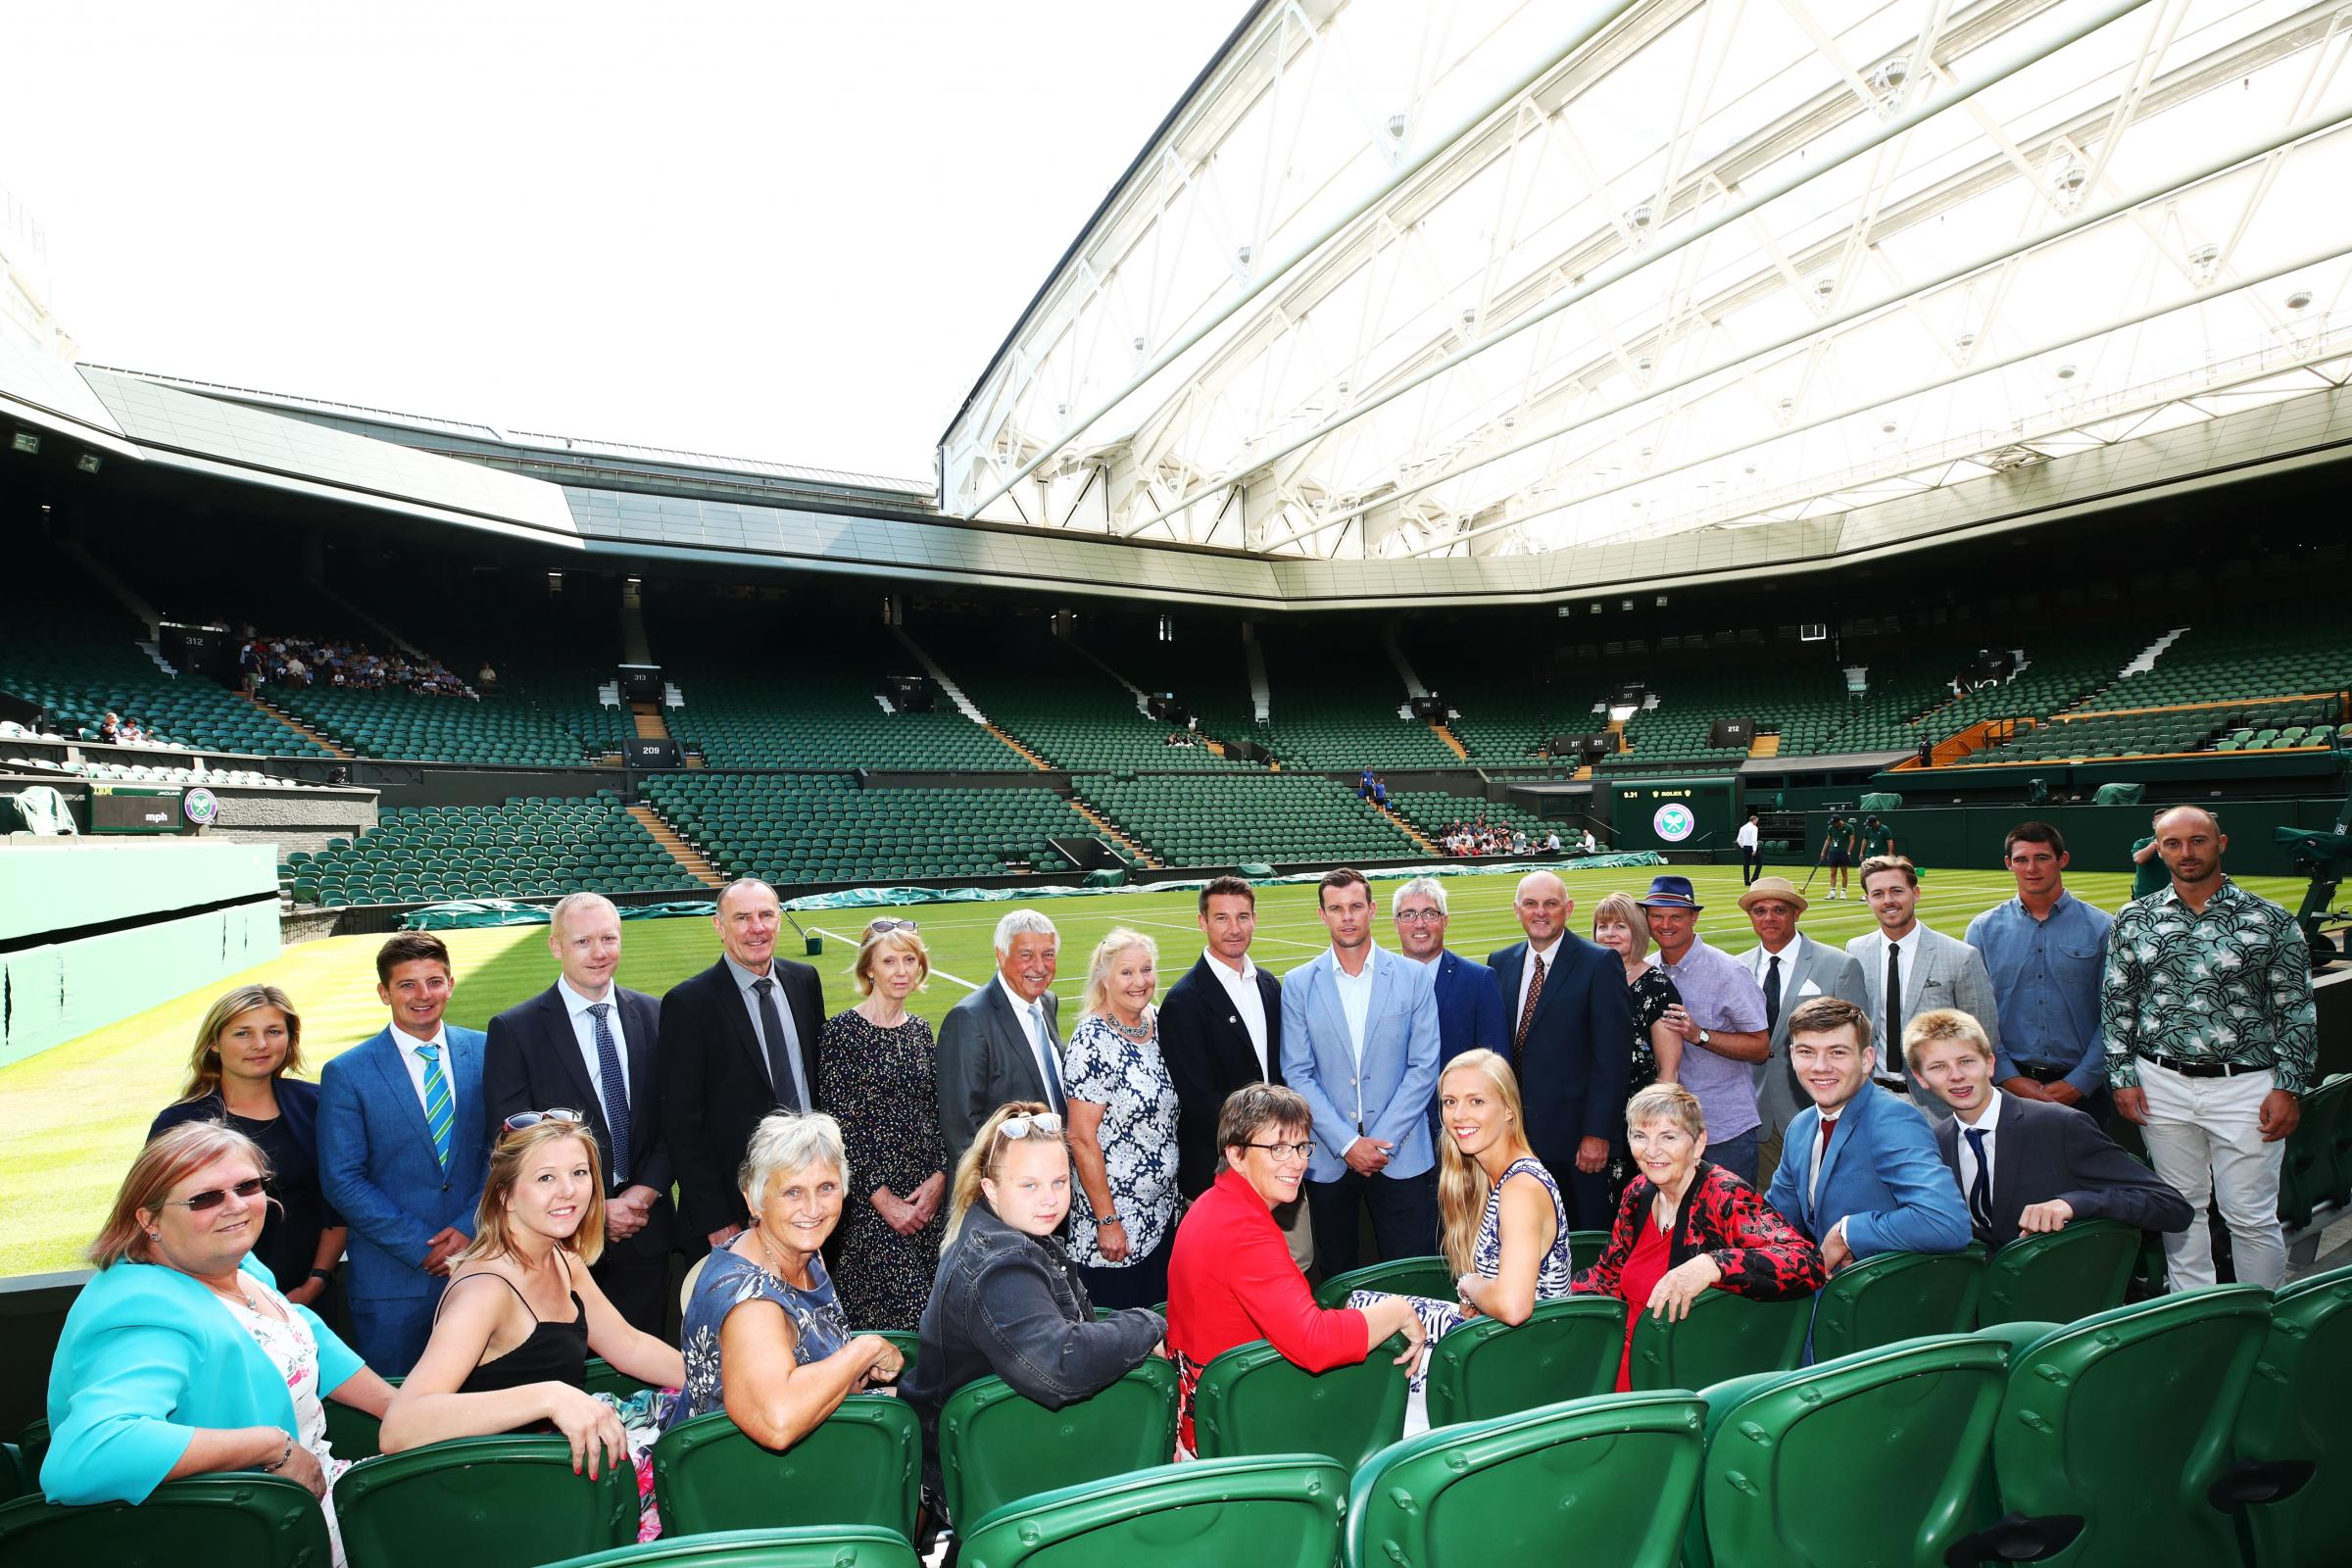 British Tennis award winners at Wimbledon including representatives from Totton & Eling Tennis Centre (Back row, third, fourth and fifth from left)